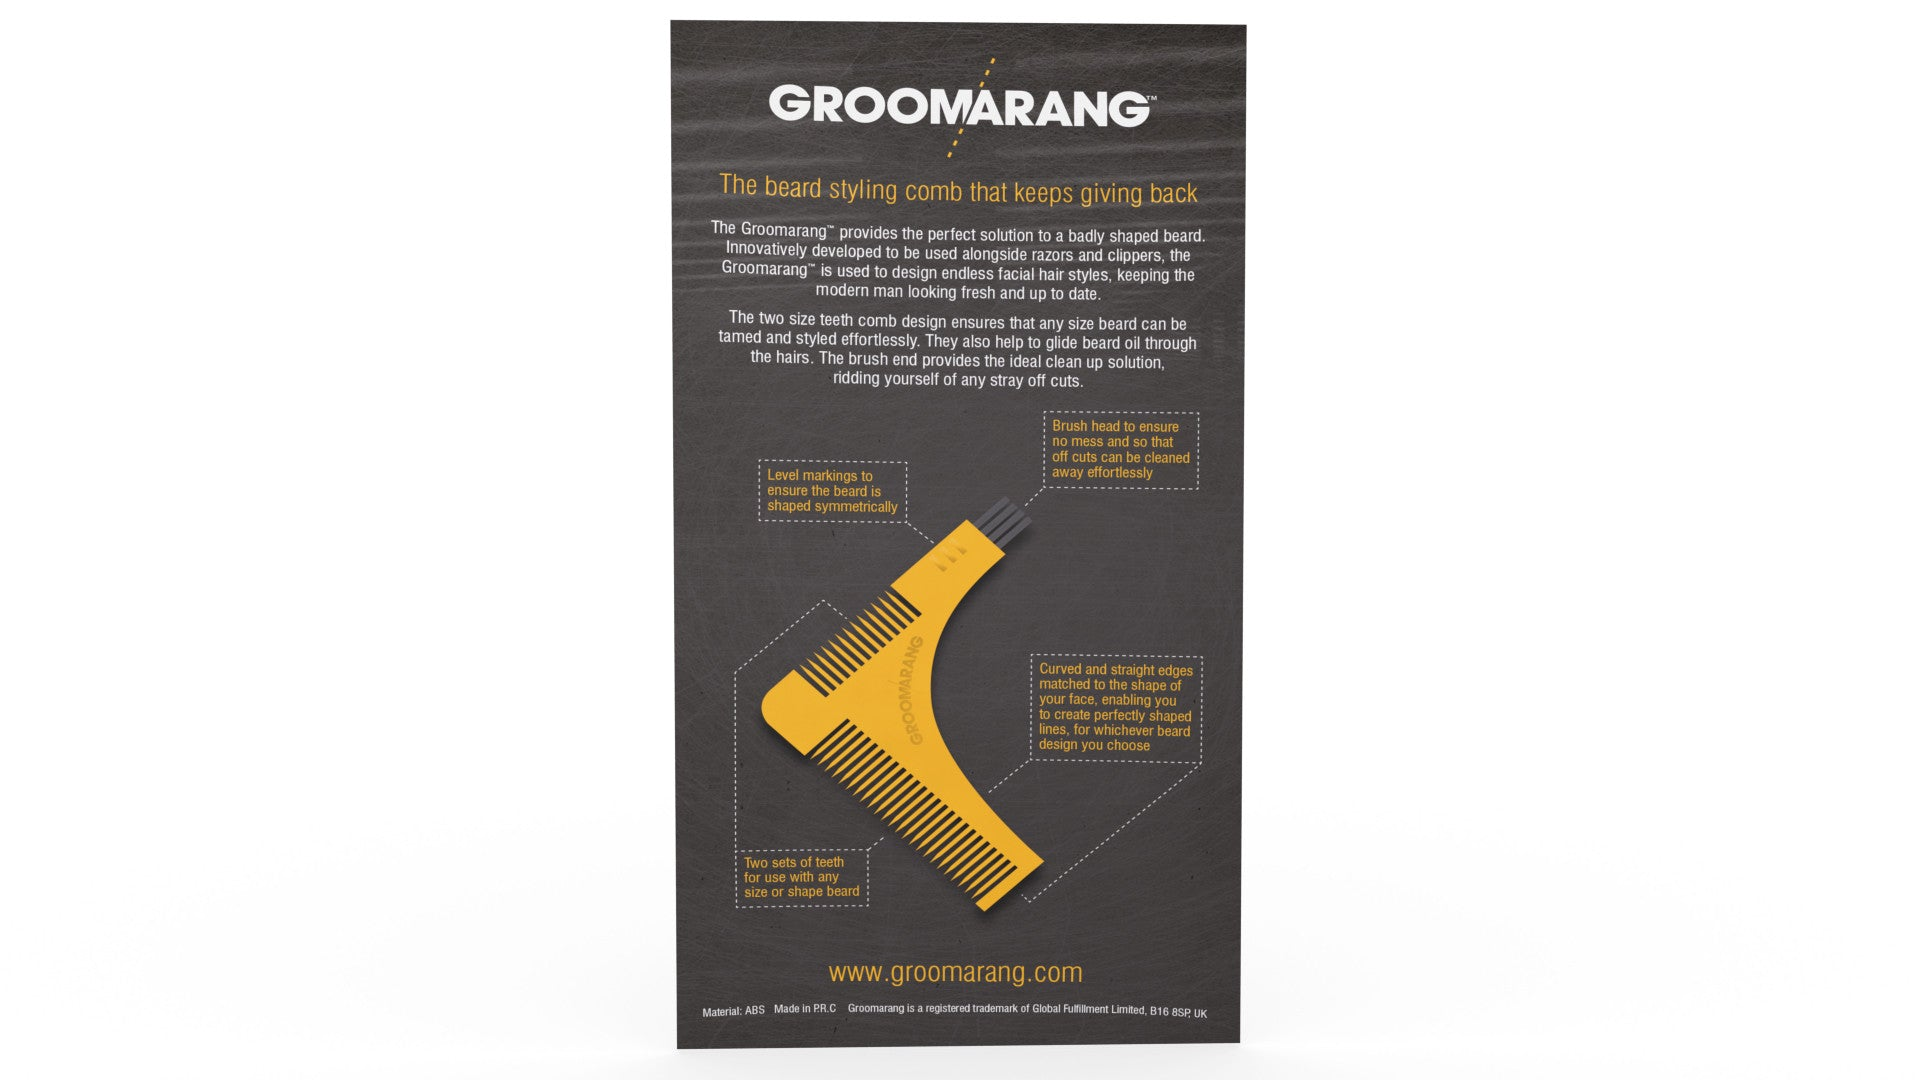 Groomarang Beard Shaping & Styling Template Comb, Combs & Brushes - Image 6